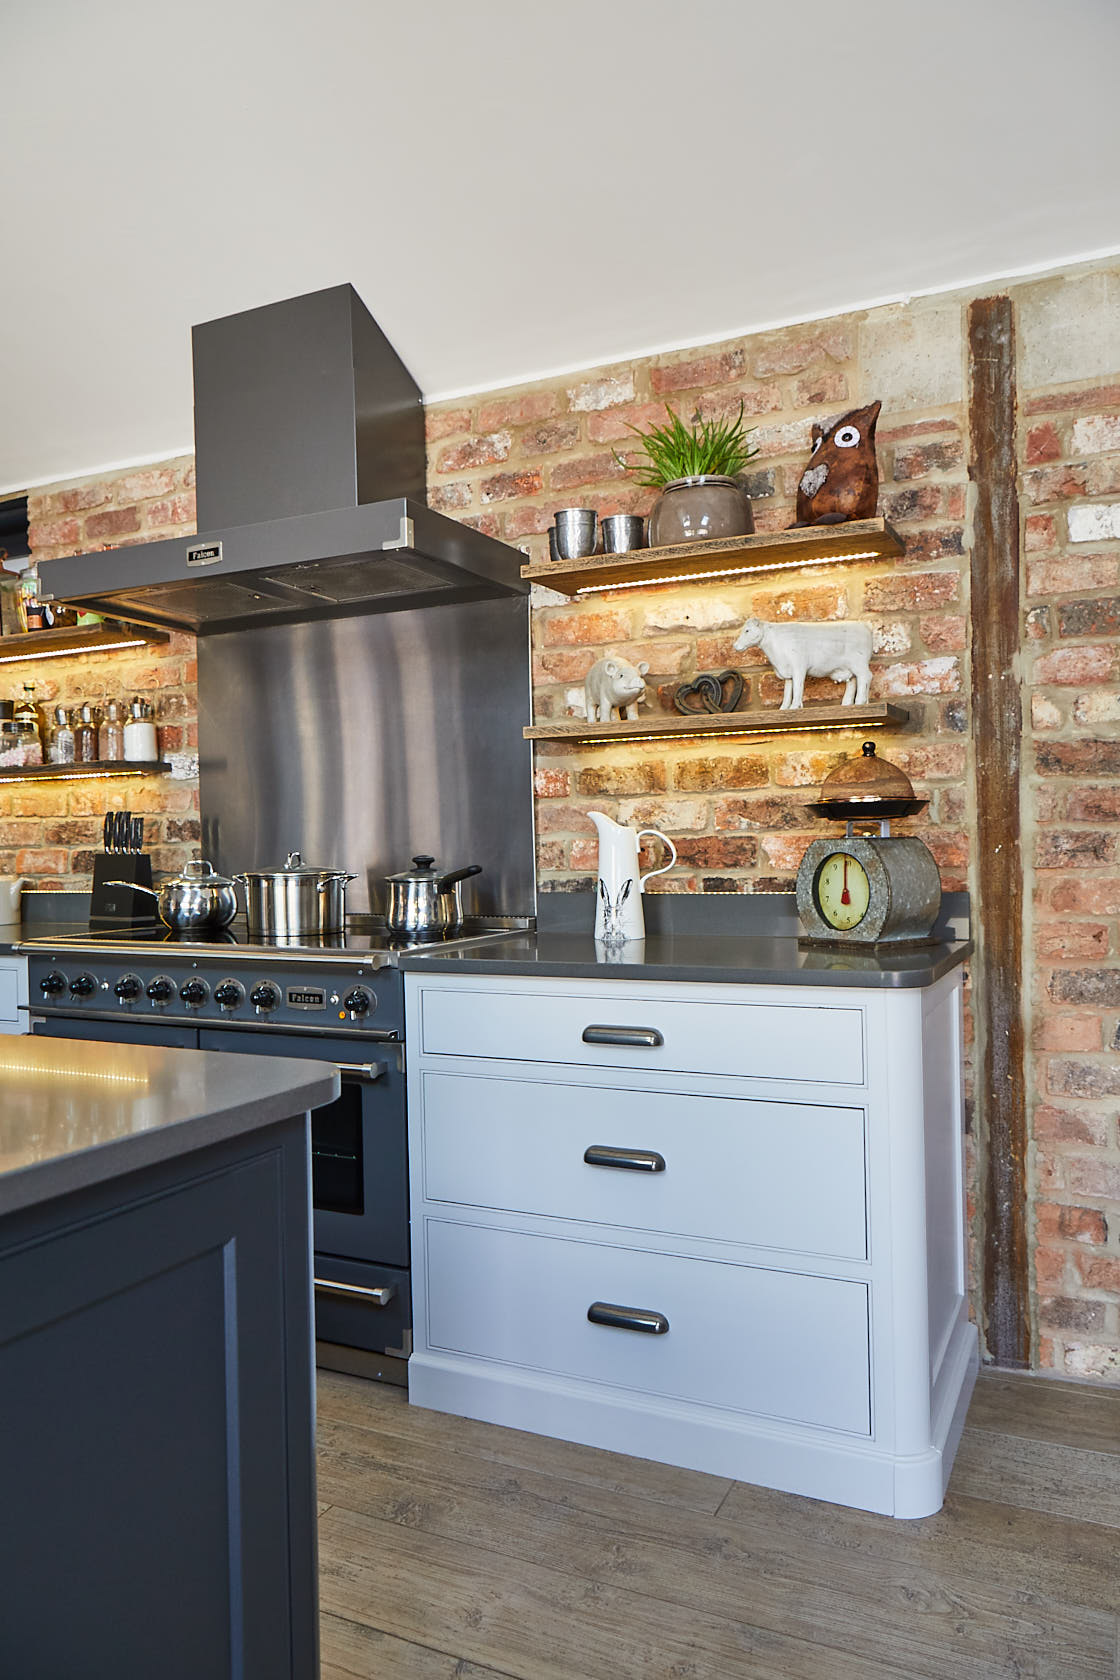 Grey range cooker with stainless steel extractor against exposed brick wall